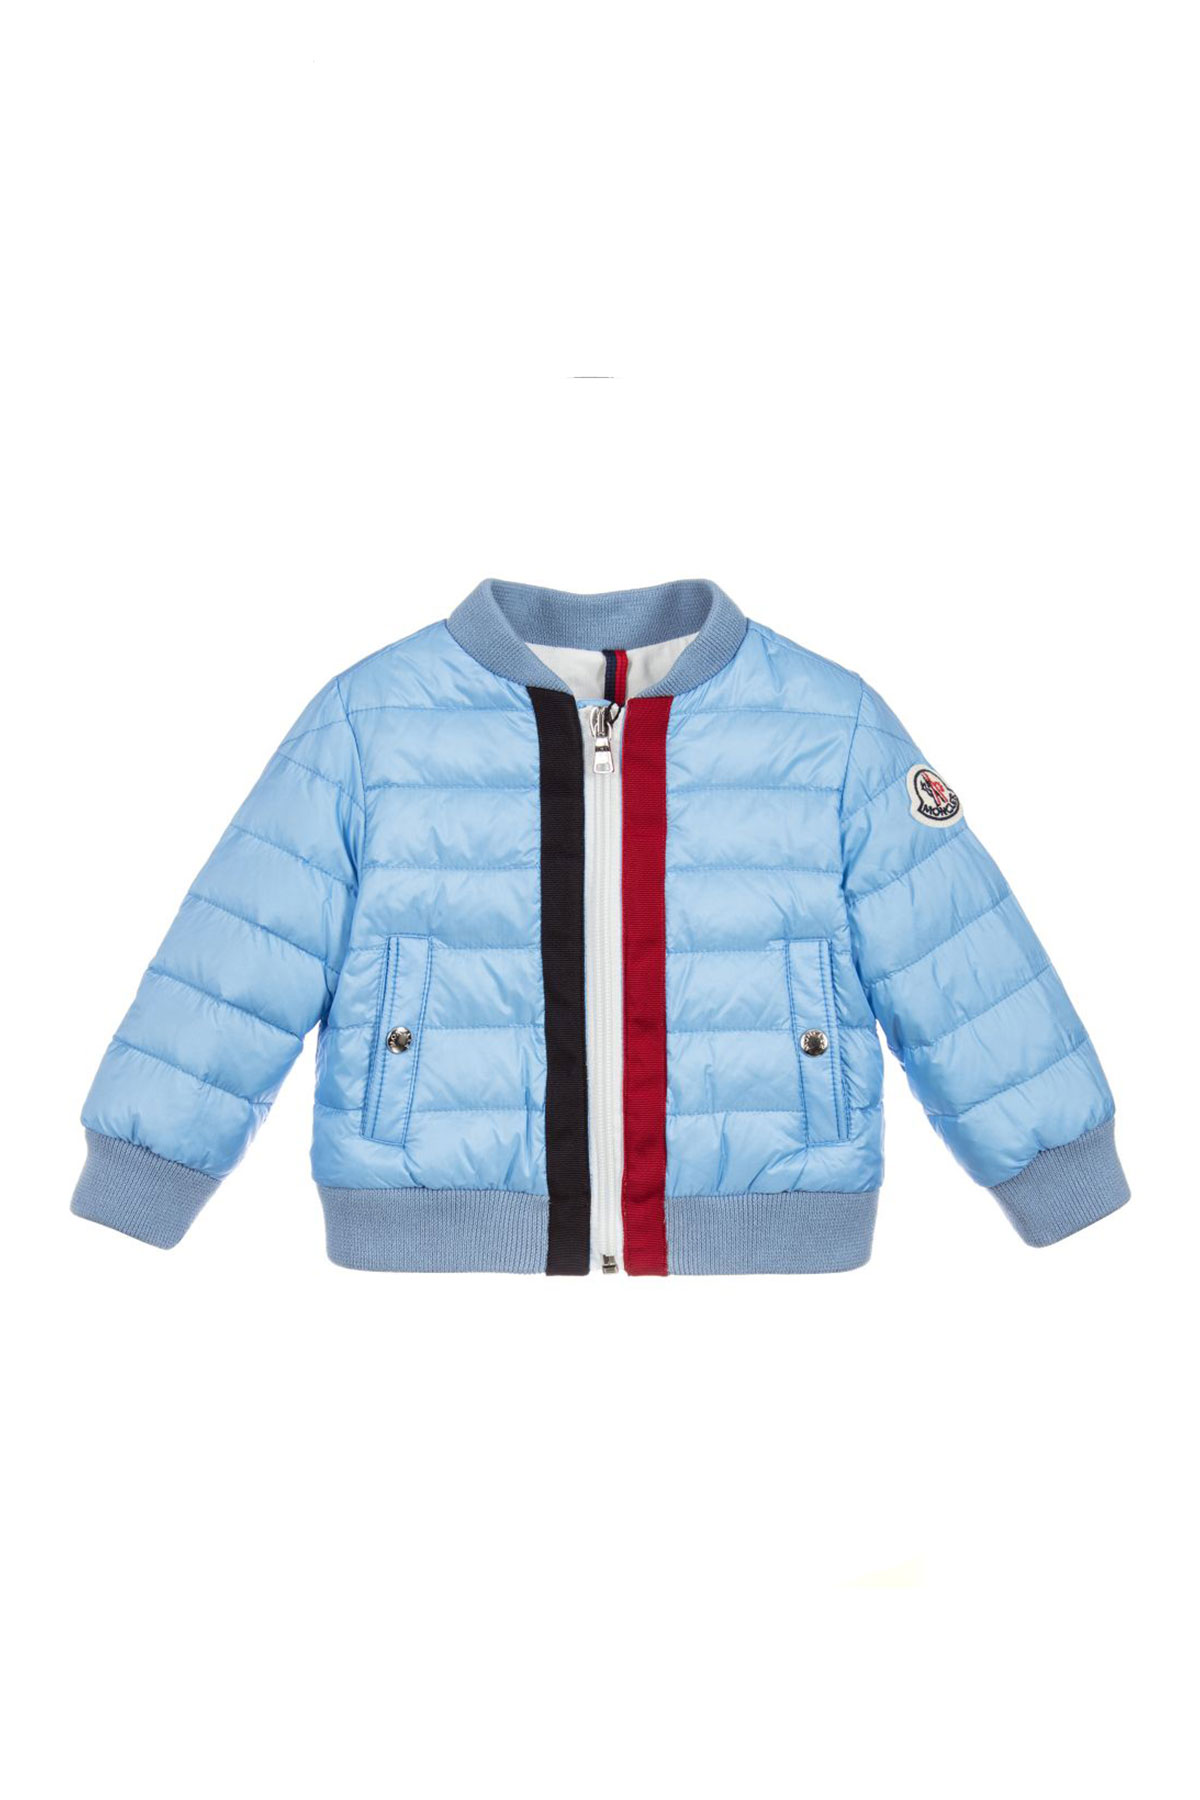 LIGHT BLUE LIGHTWEIGHT JACKET MODEL; LIGHT BLUE LIGHTWEIGHT JACKET MODEL ...